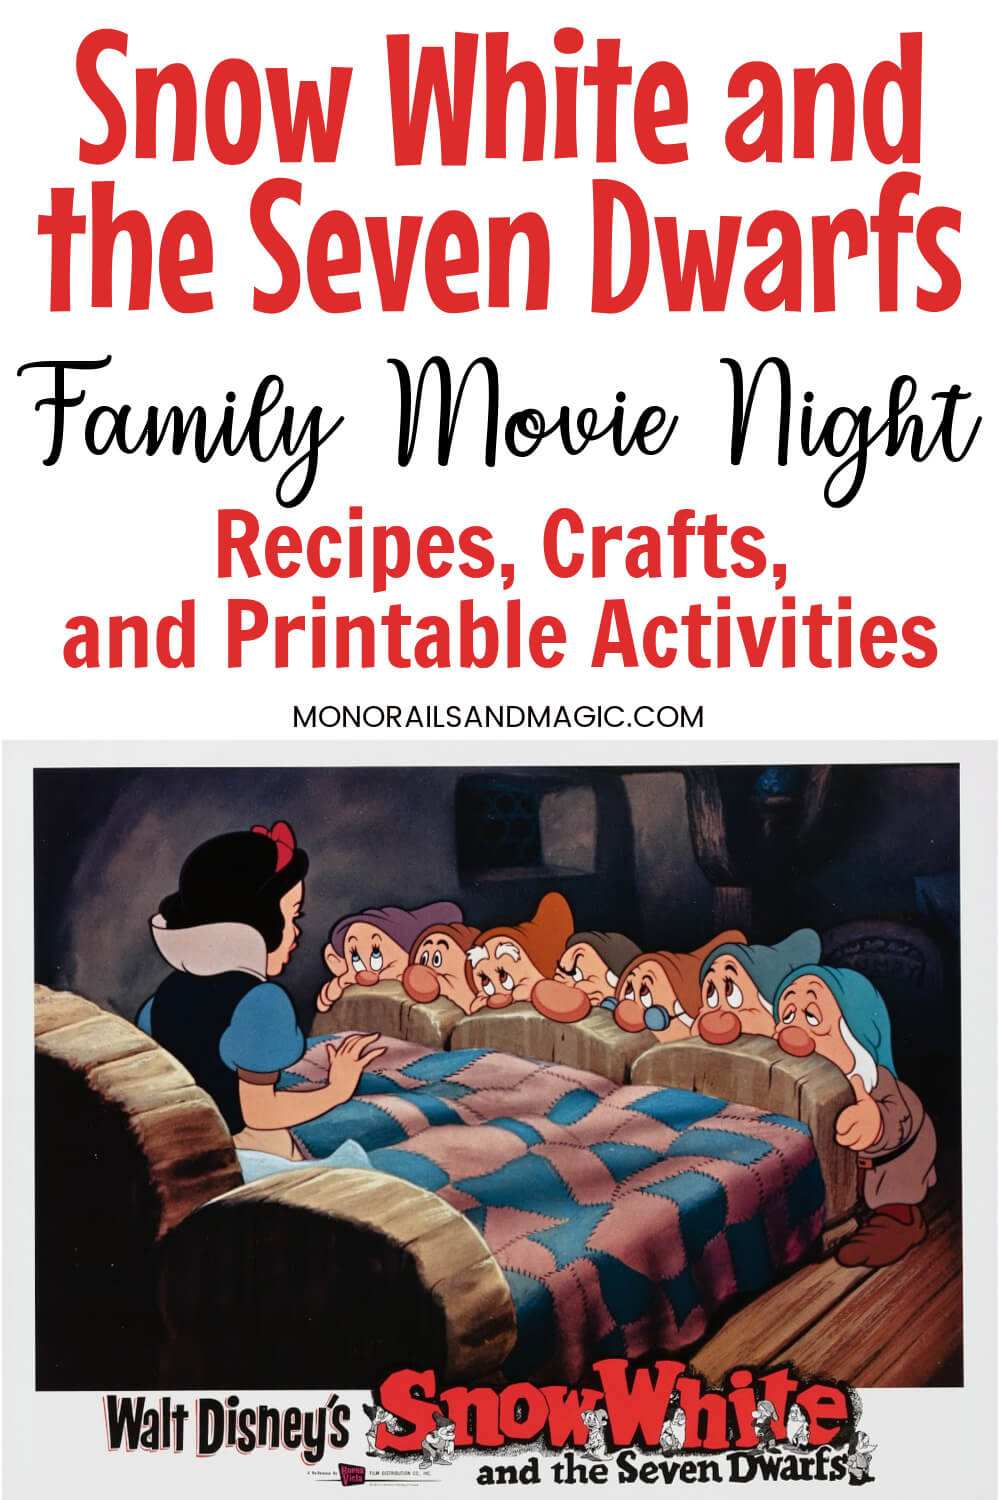 Recipes, crafts, and printable activities for a Snow White and the Seven Dwarfs family movie night.